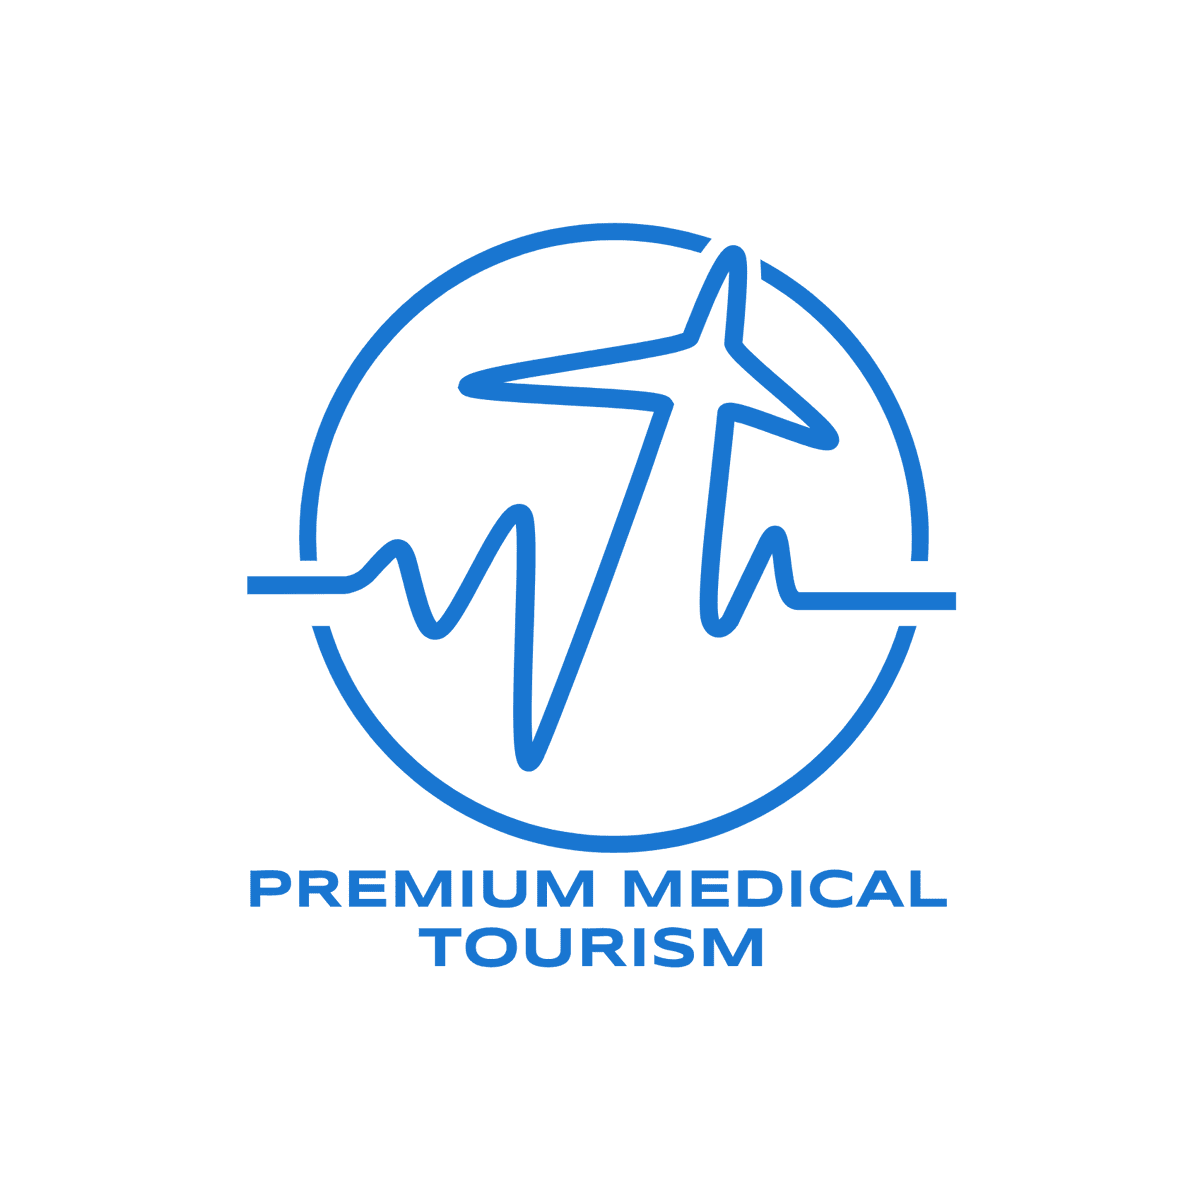 Premium Medical Tourism LLC